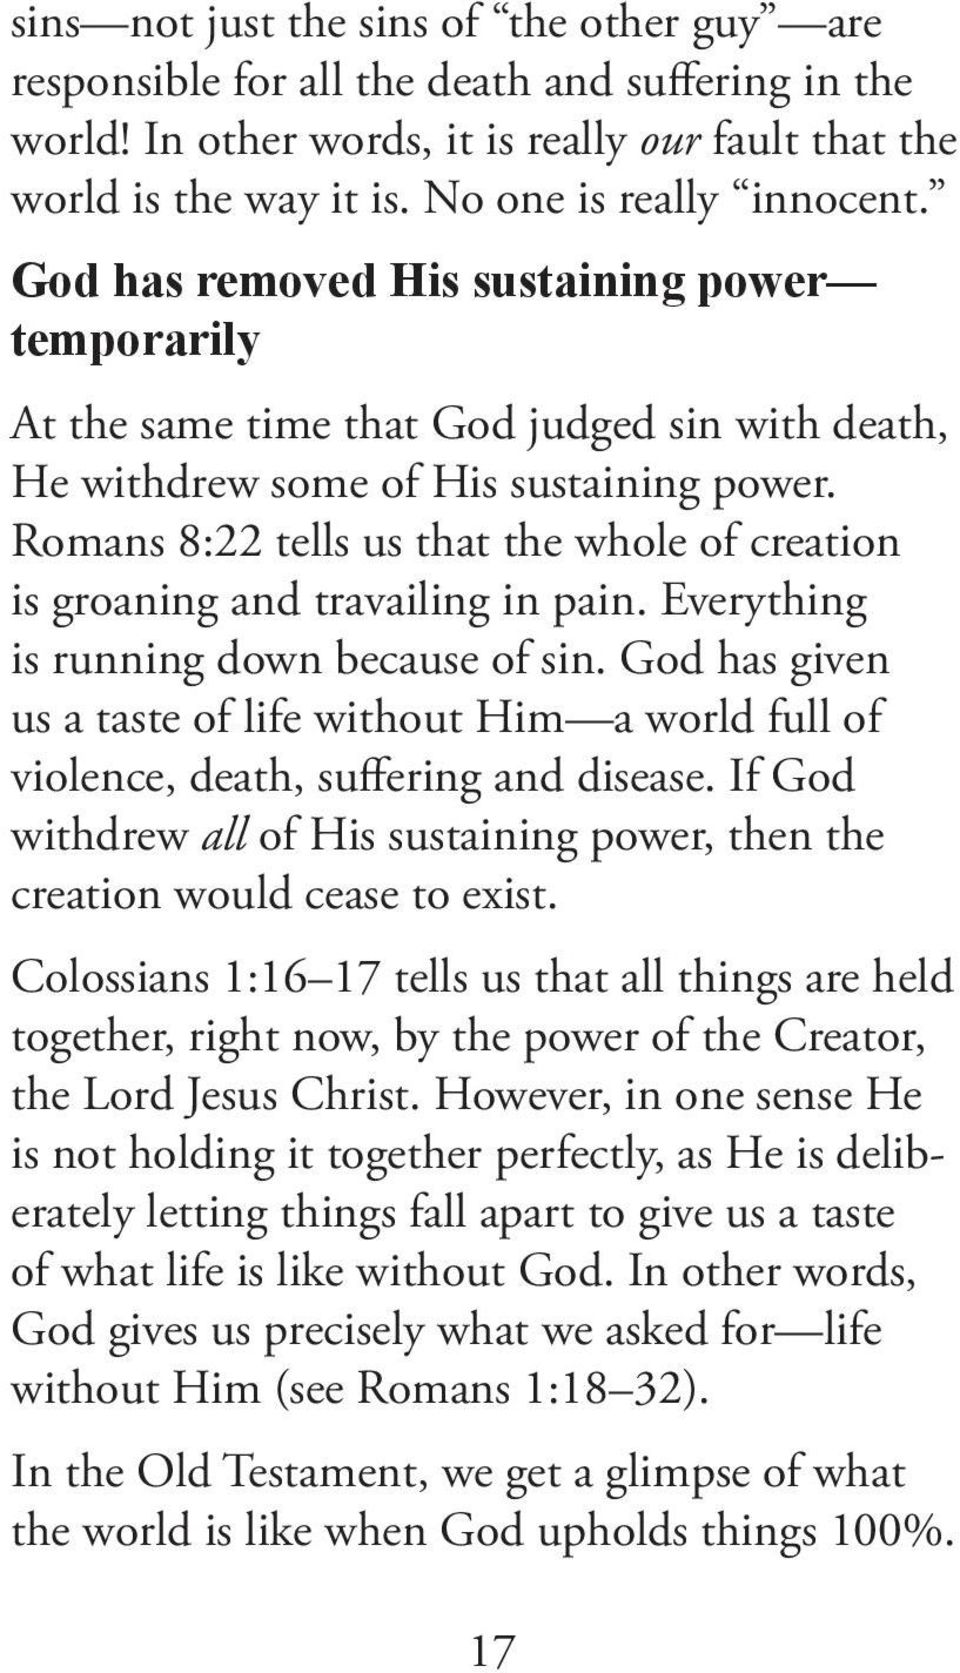 Romans 8:22 tells us that the whole of creation is groaning and travailing in pain. Everything is running down because of sin.